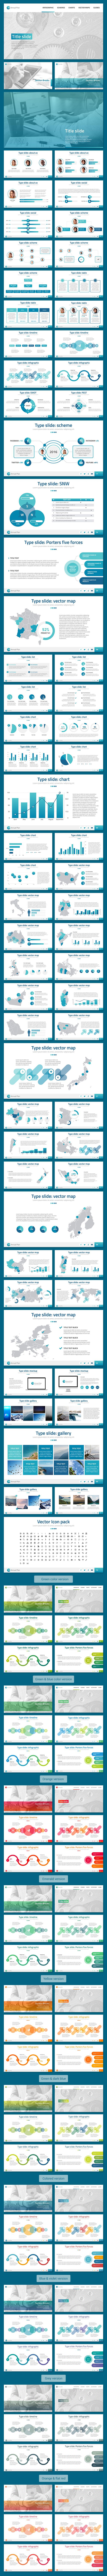 Annual Plan PowerPoint Template #design #slides Download: http://graphicriver.net/item/annual-plan-powerpoint/14027854?ref=ksioks